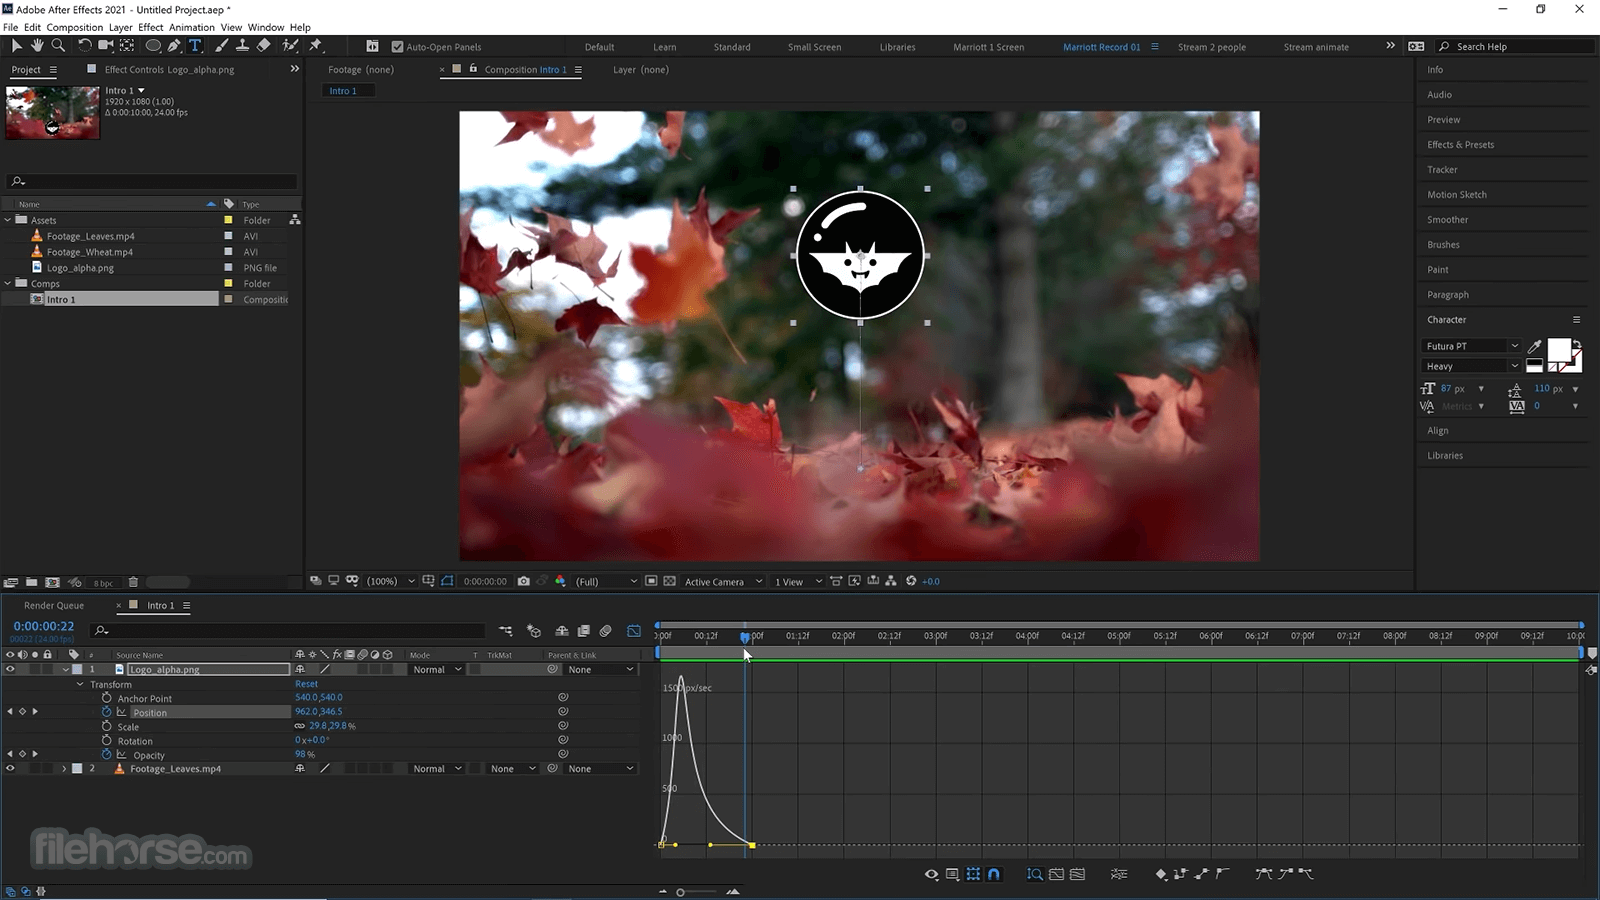 after effects software free download for windows 8